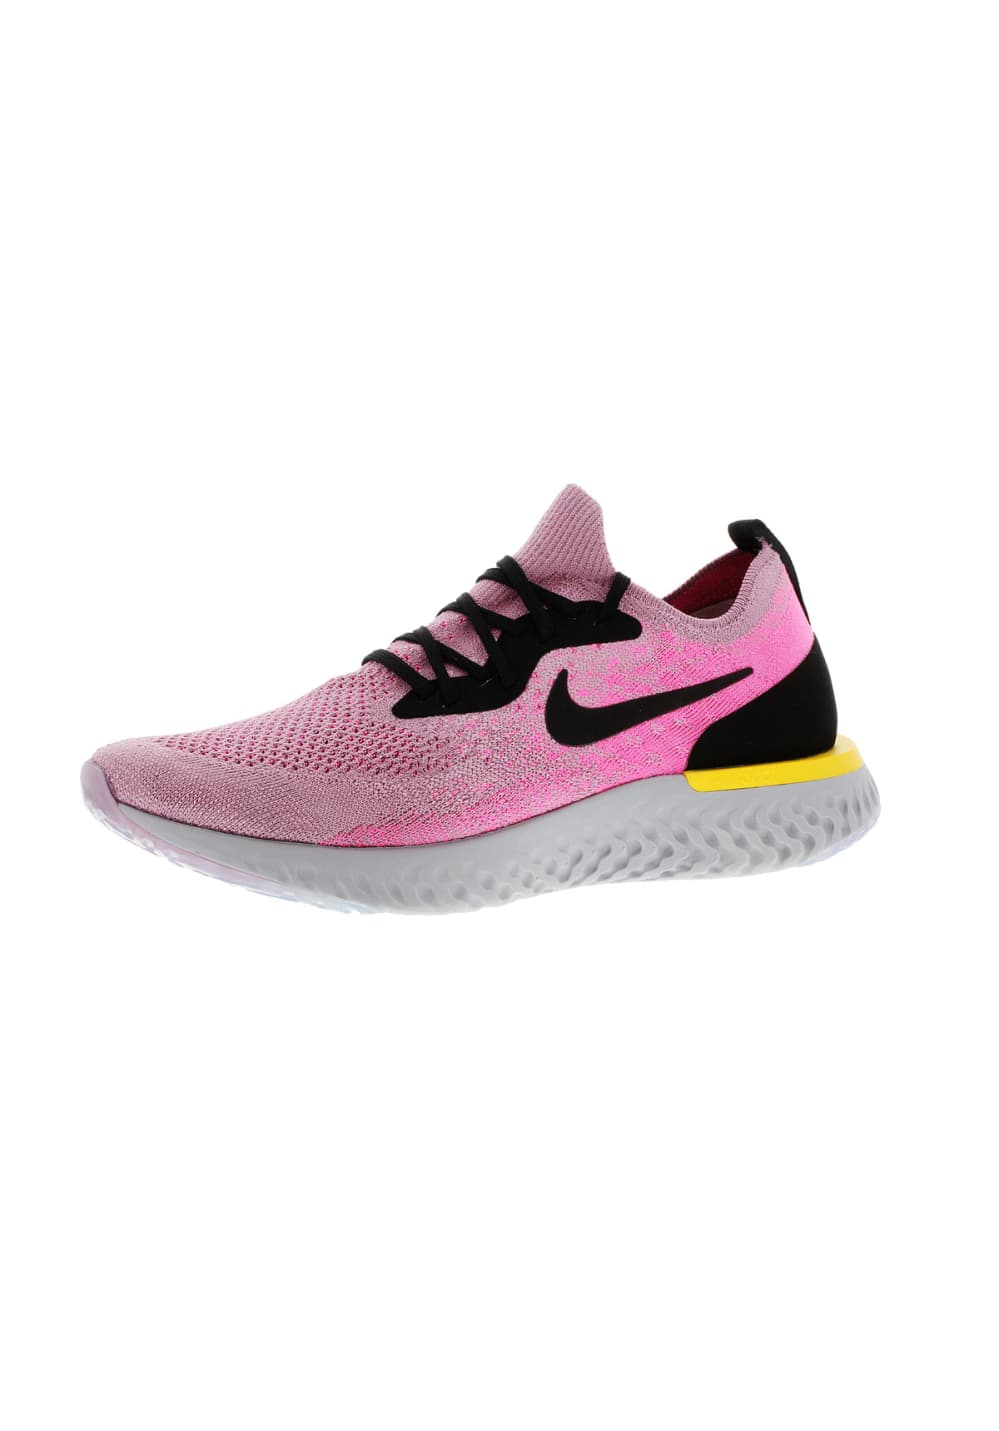 online store 679c0 2878c Nike Odyssey React - Running shoes for Men - Pink